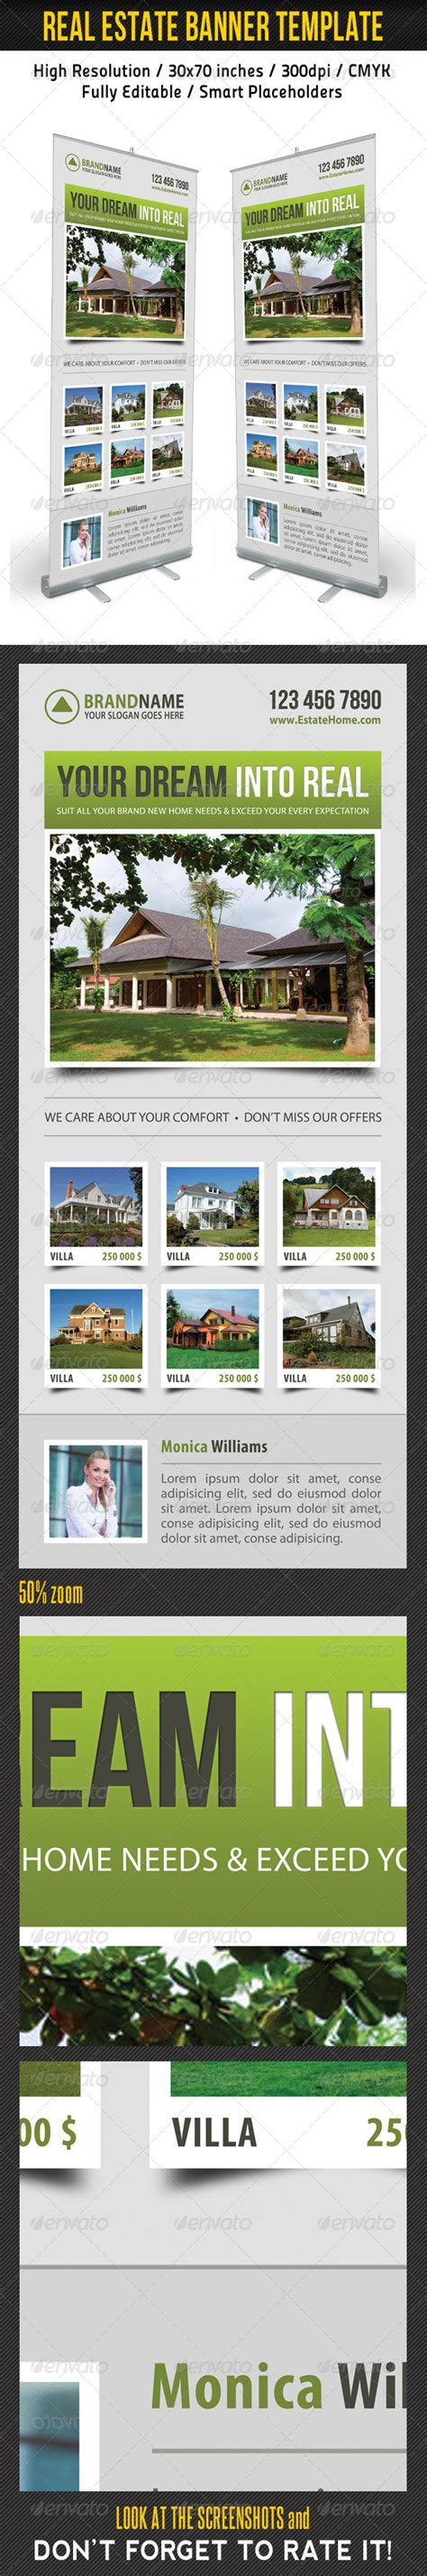 Real Estate Banner Template 08 Signage Download Best Gfx Download Real Estate Banners Template